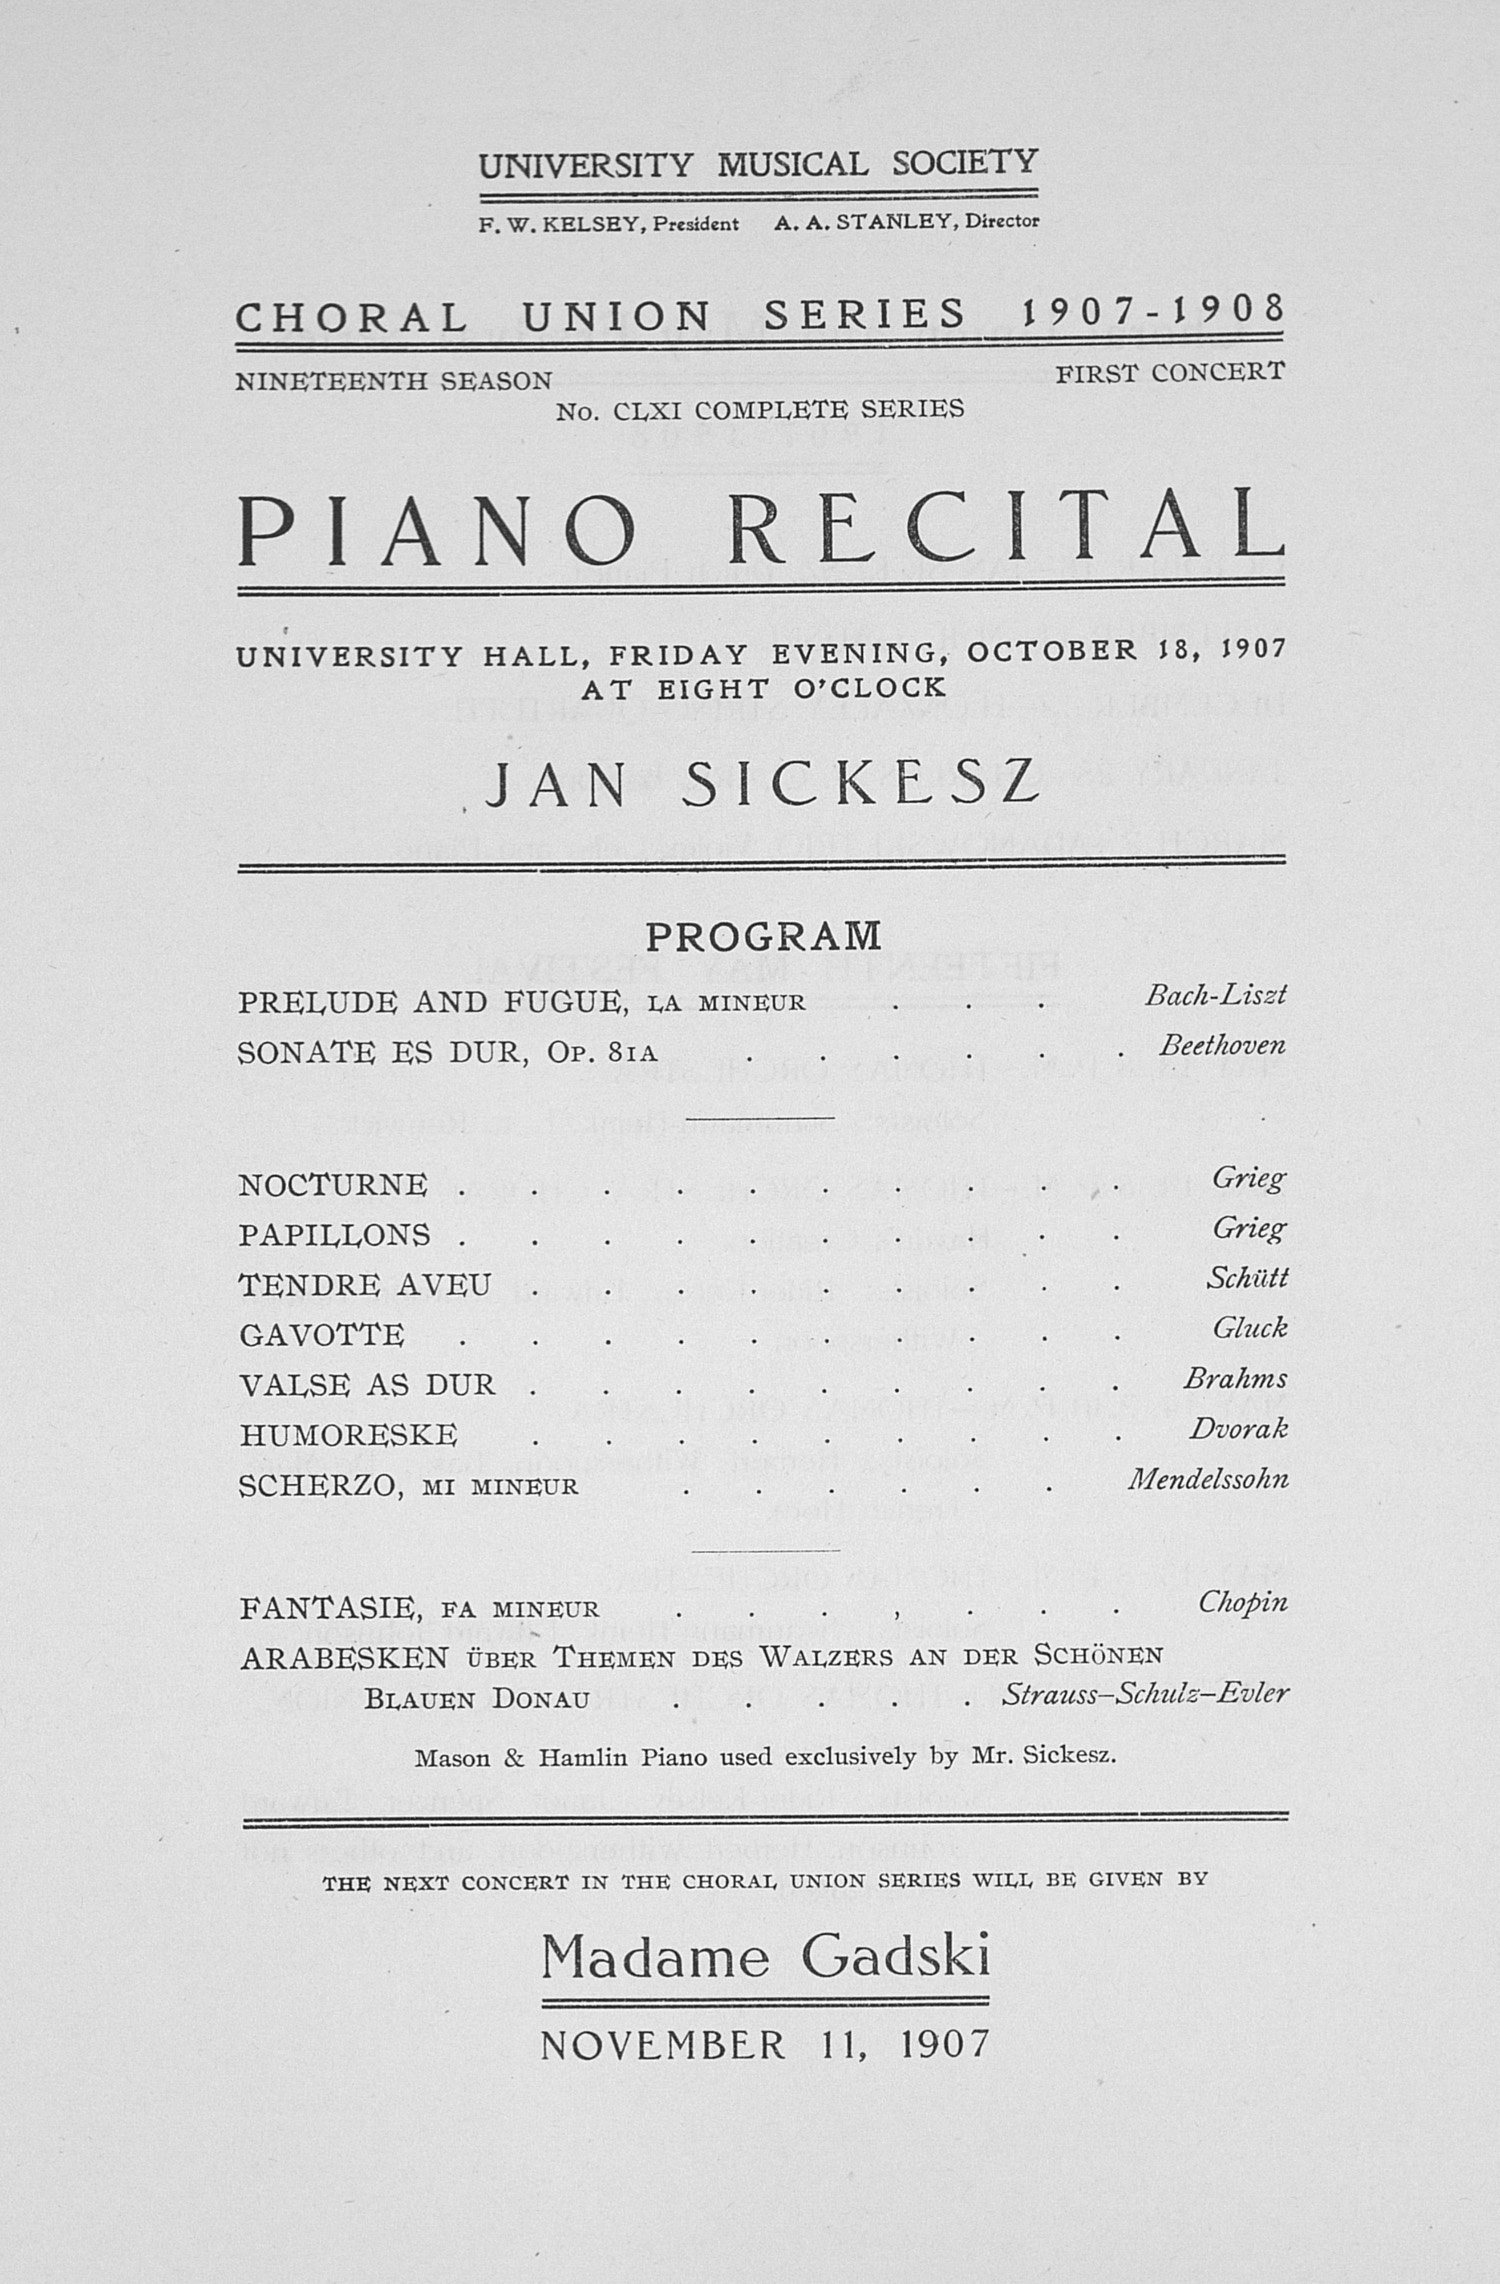 Concert Program Template Free Awesome Ums Concert Program October 18 1907 Choral Union Series